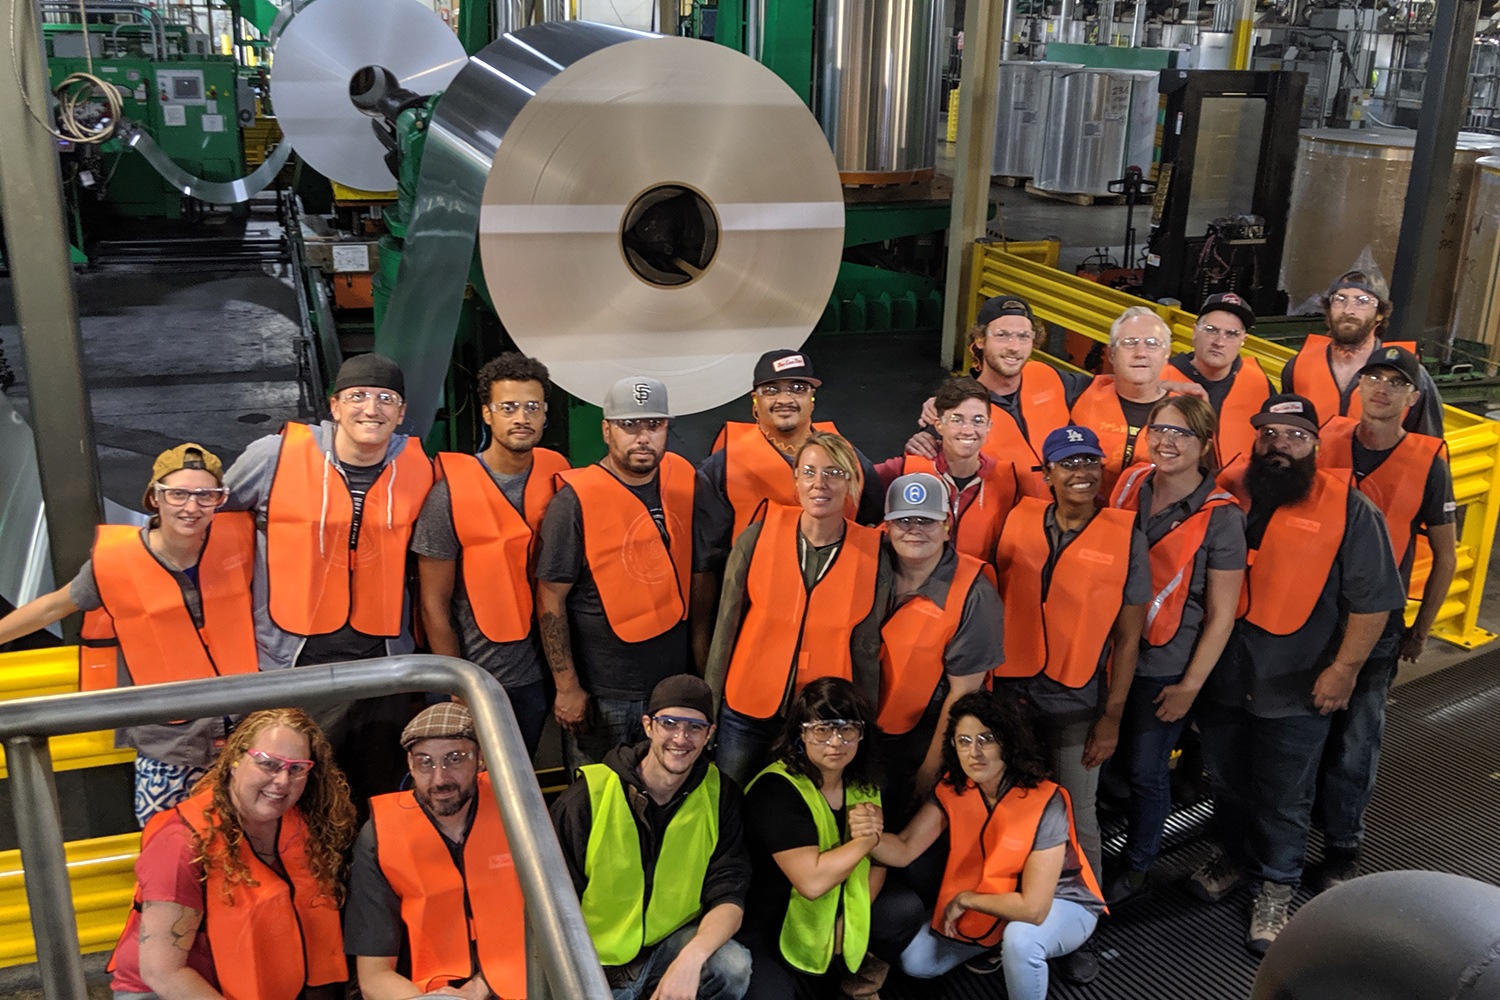 Team posing for photo at the Ball Corporation with machinery in the background